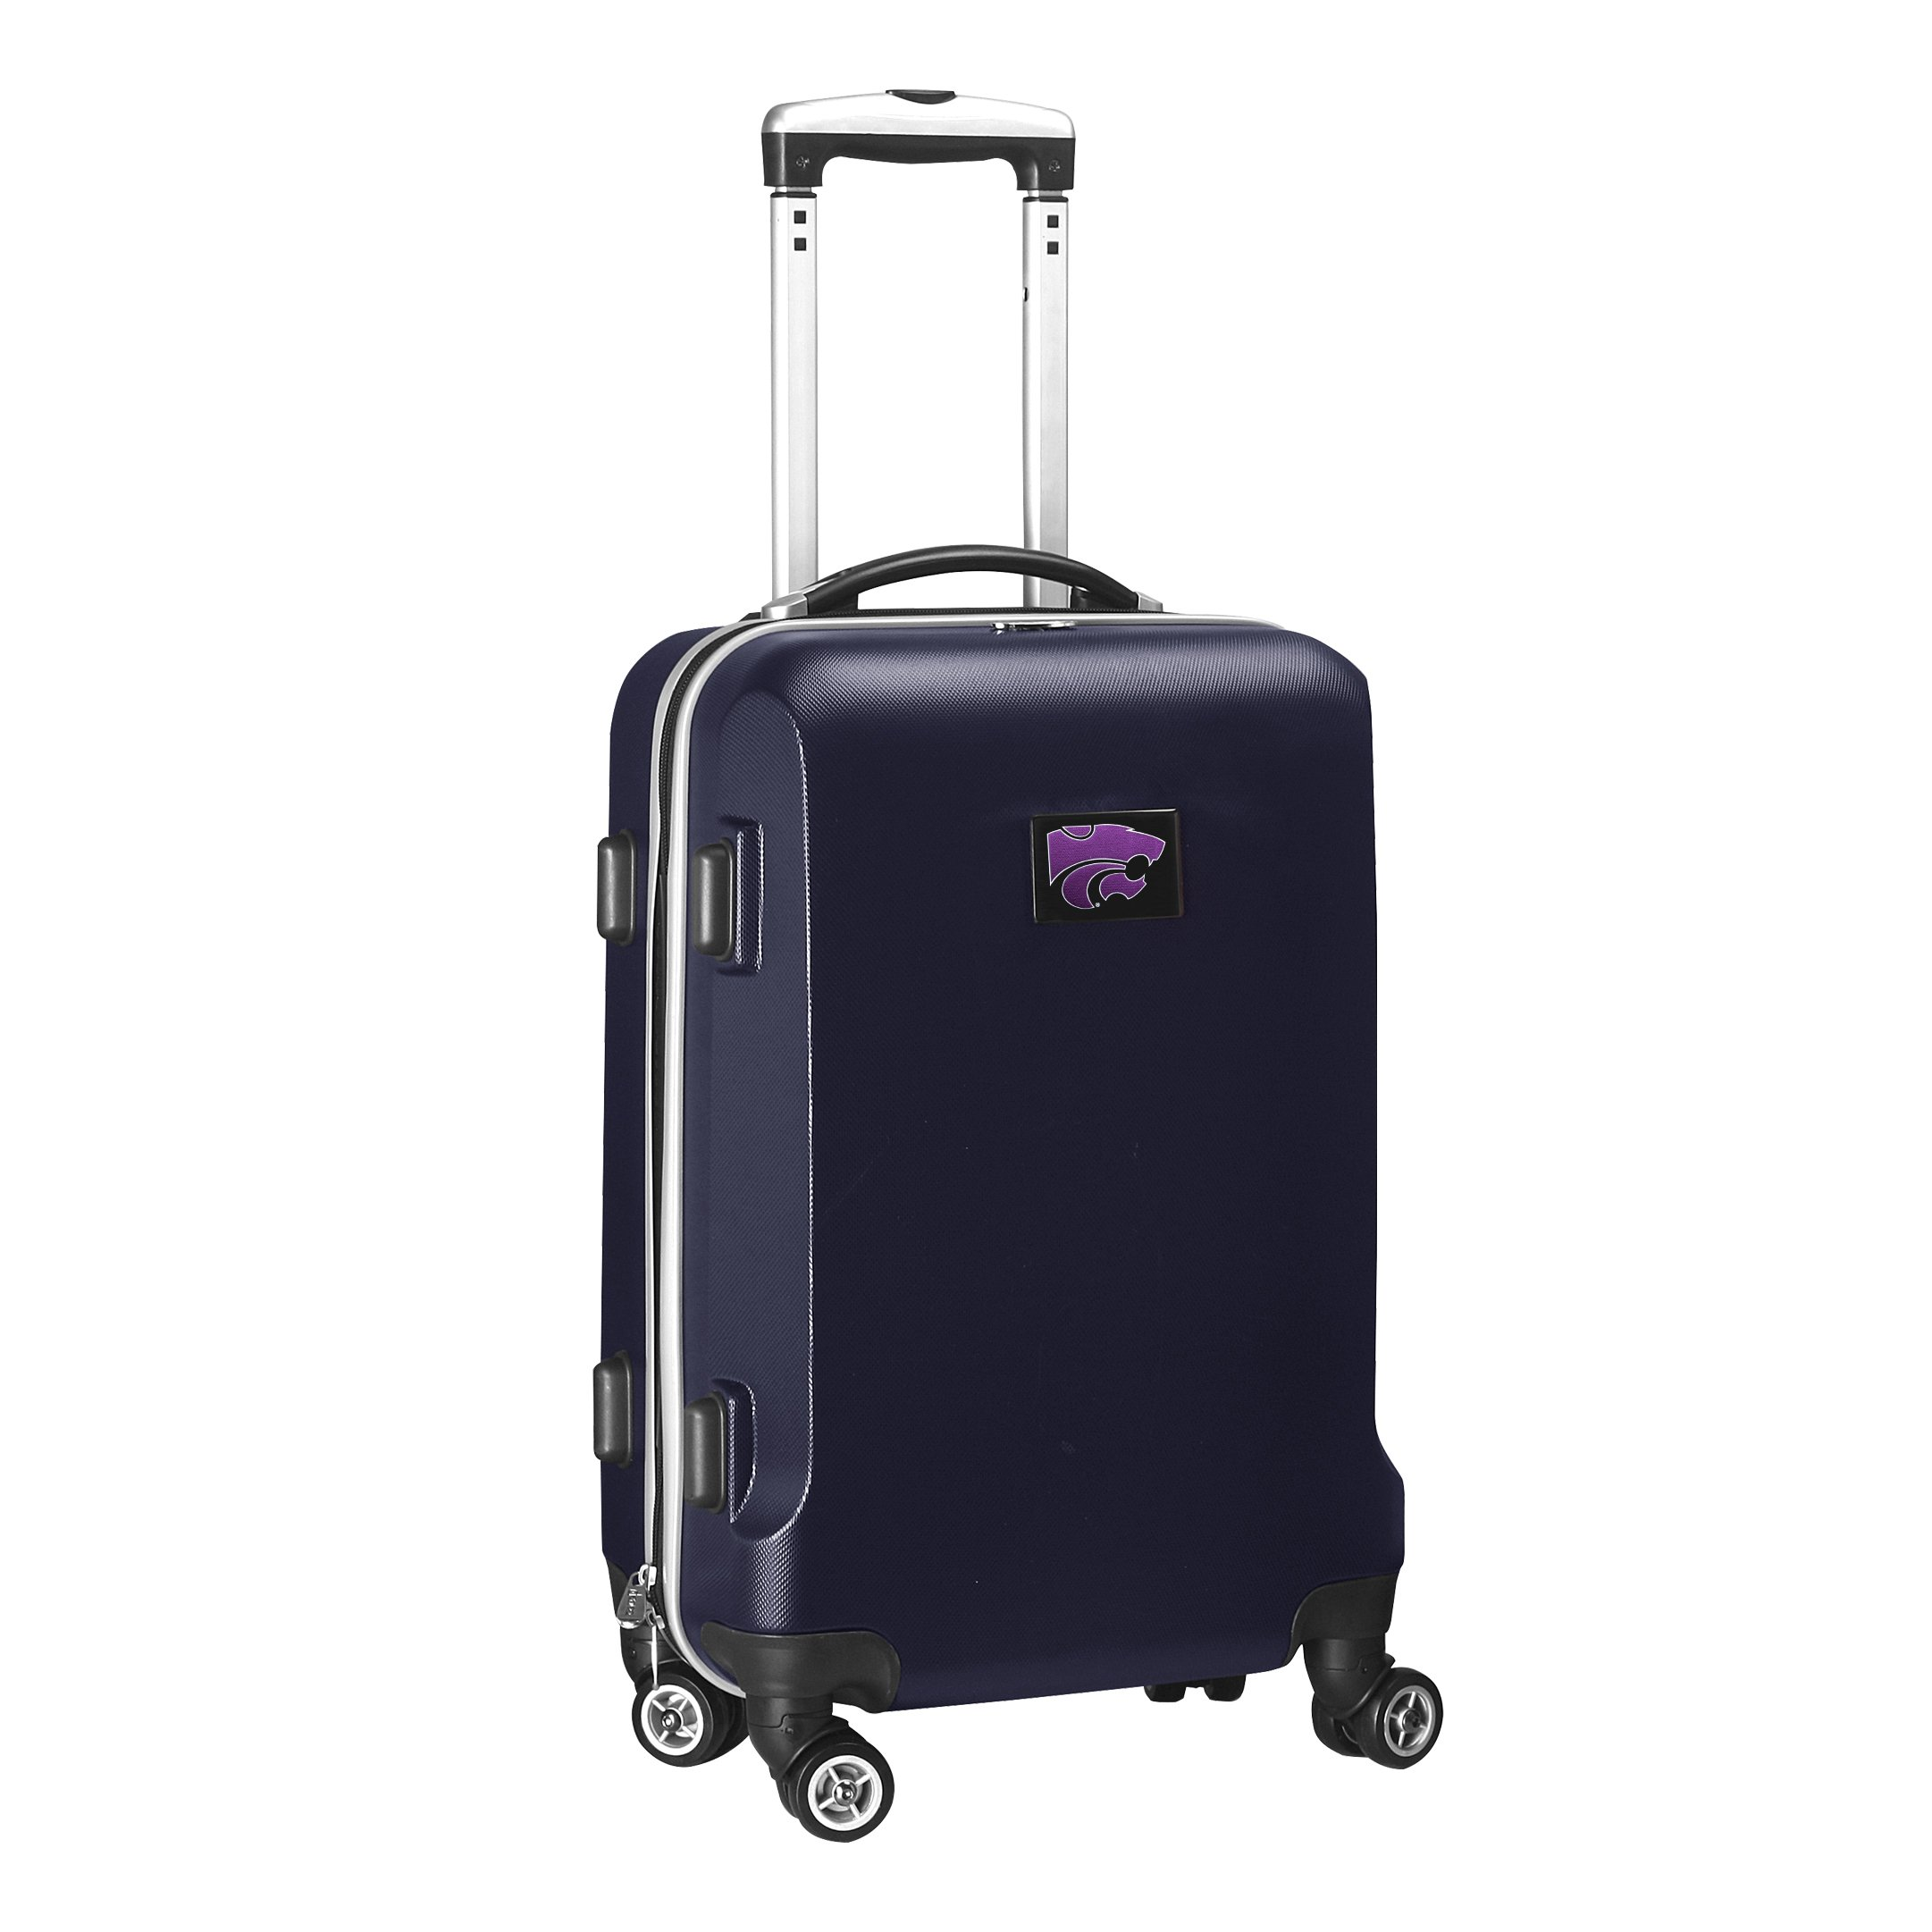 Denco NCAA Kansas State Wildcats Carry-On Hardcase Luggage Spinner, Navy